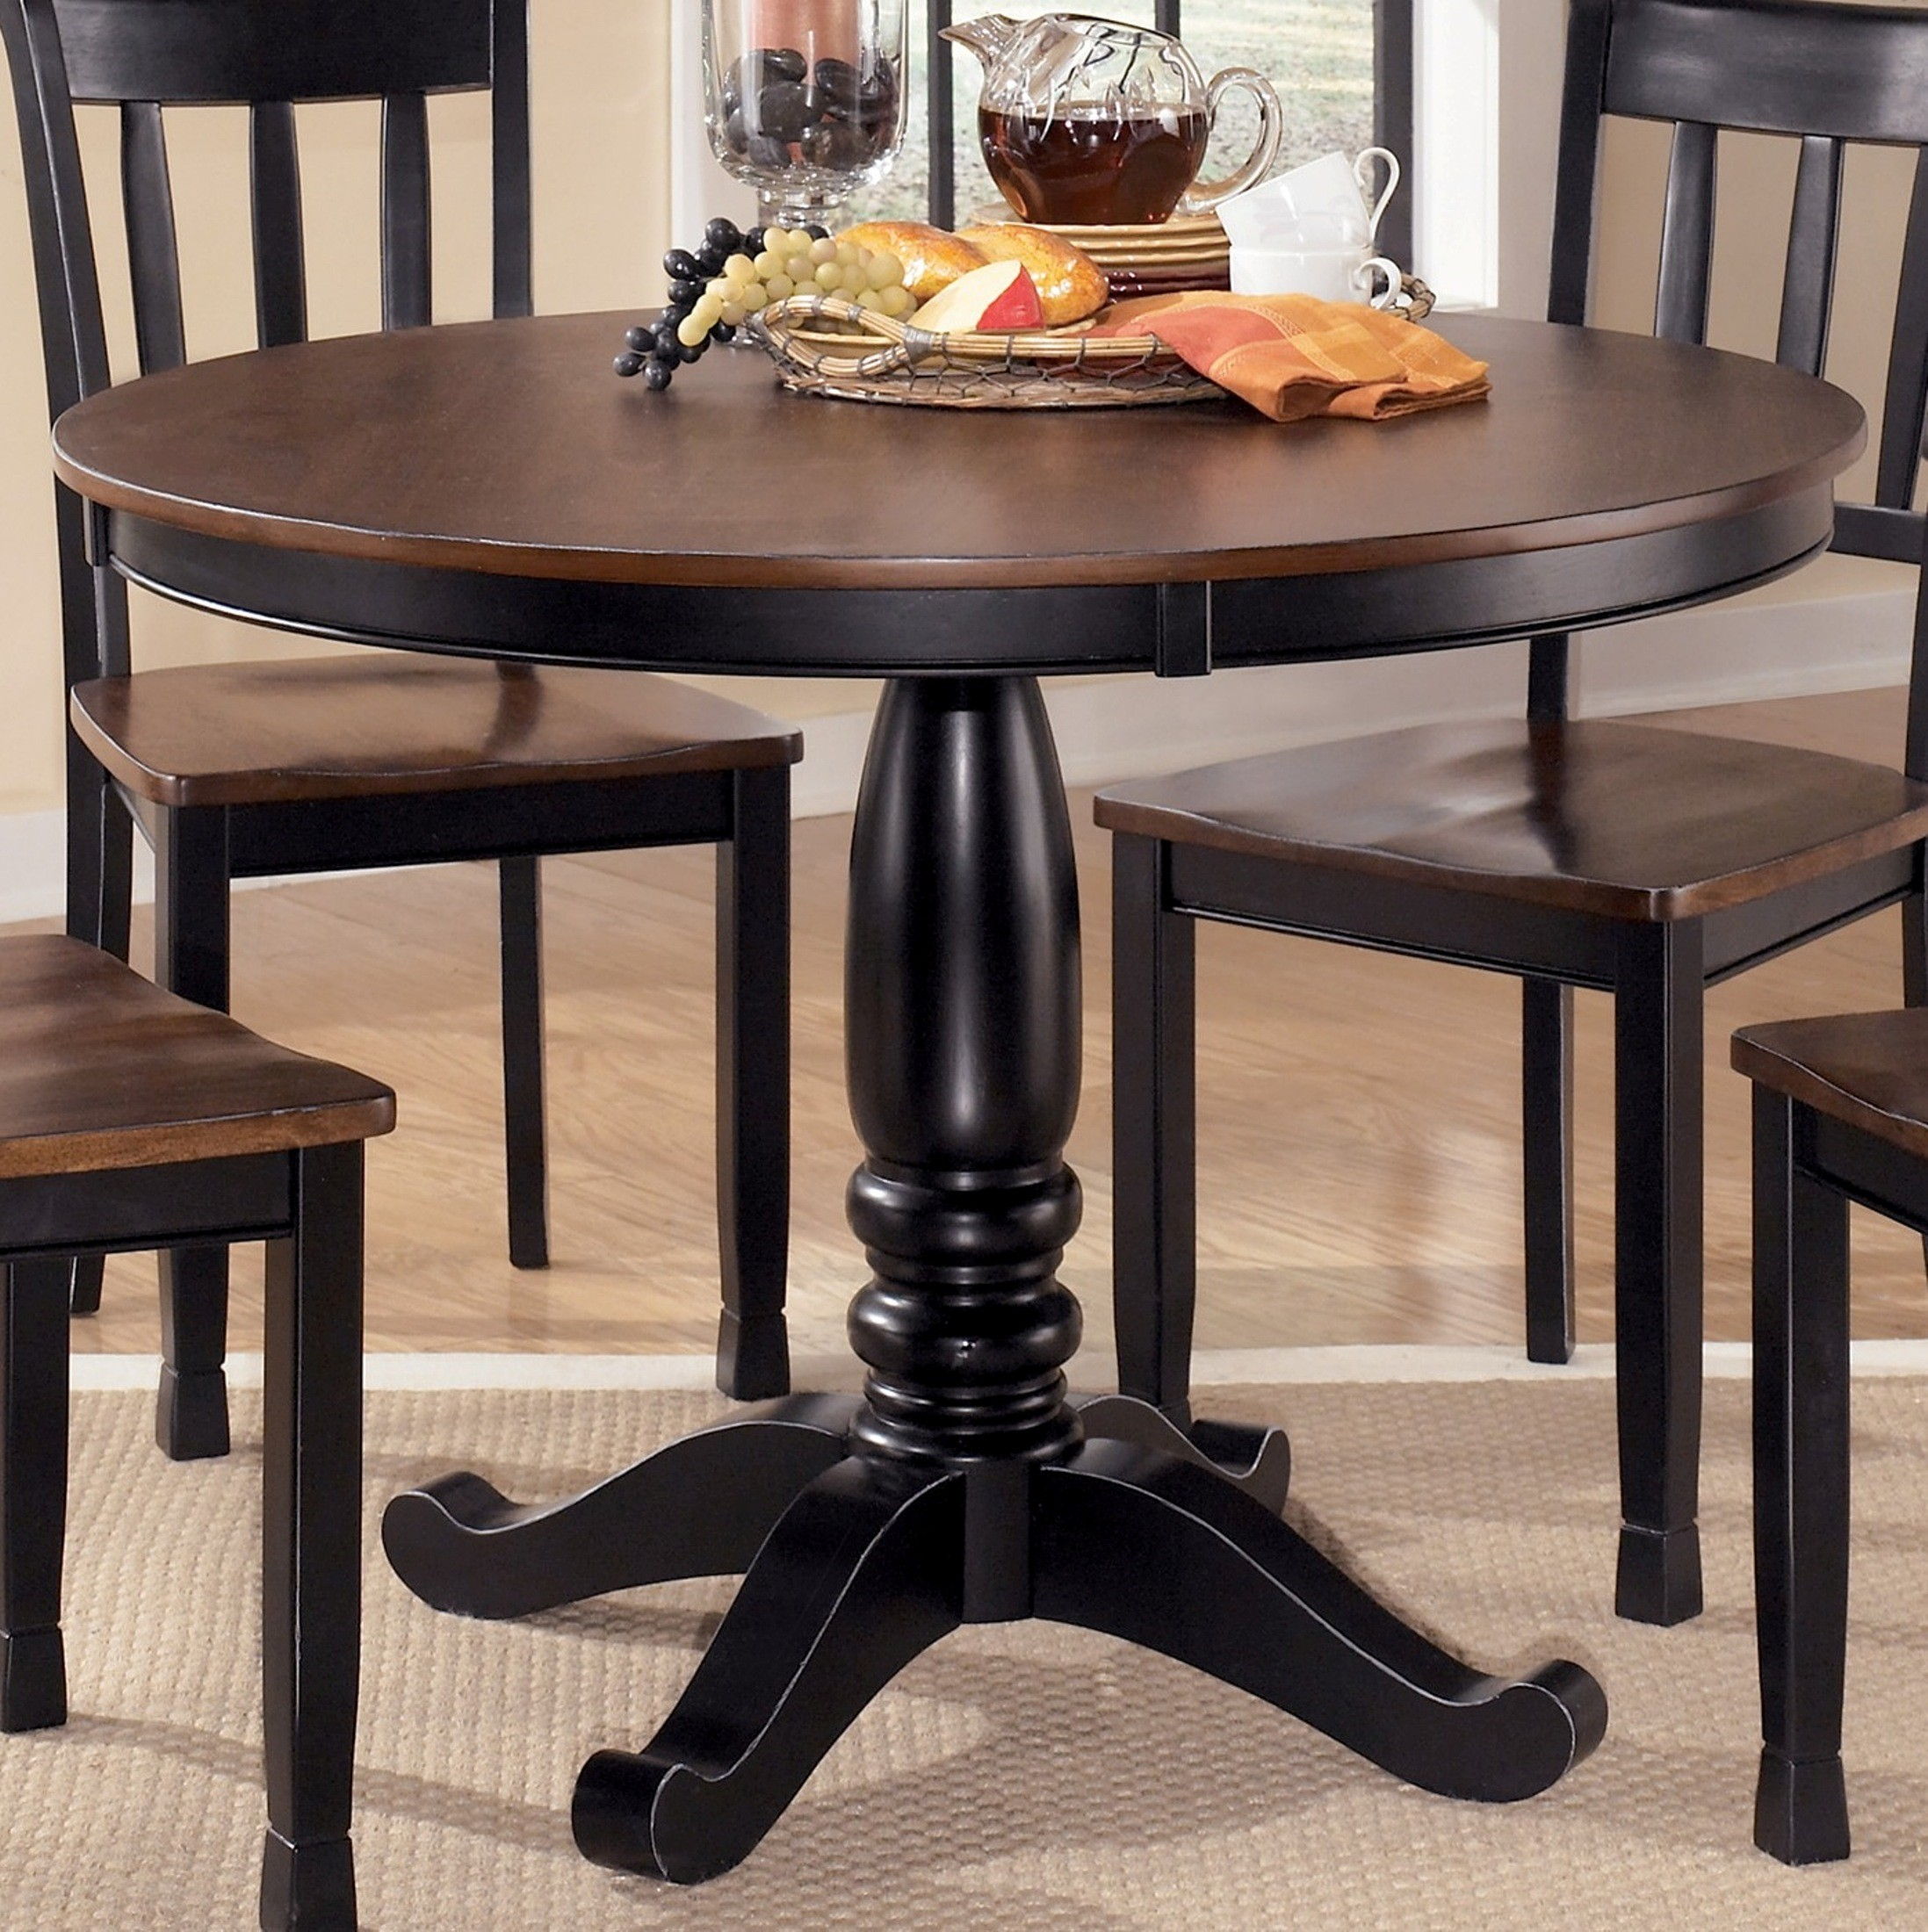 Round Dining Room Table For 8: Owingsville Round Dining Room Table From Ashley (D580-15B